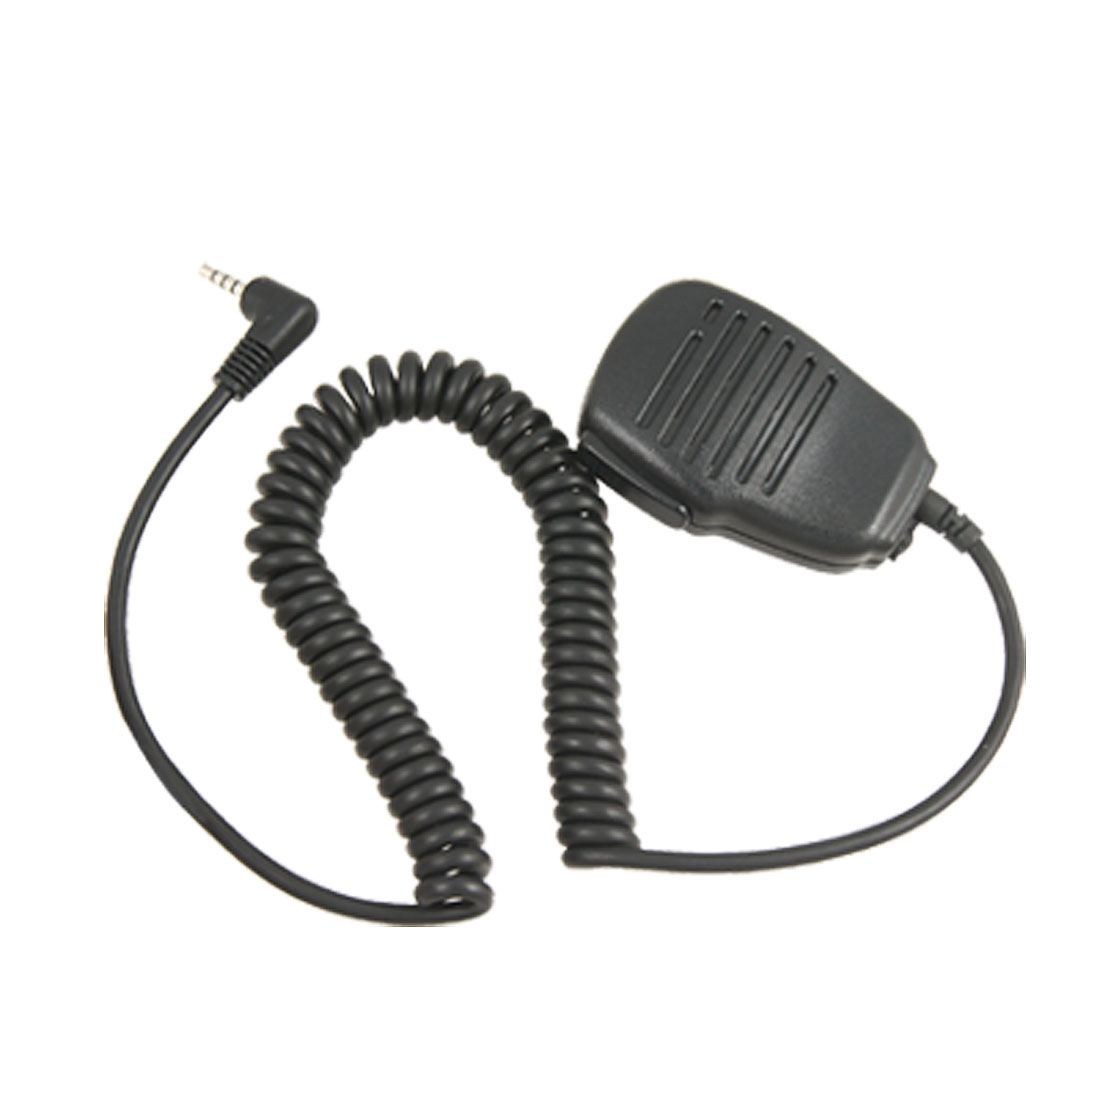 Black Coil Cord 3.5mm Connector Speaker Microphone for Yaesu VX351